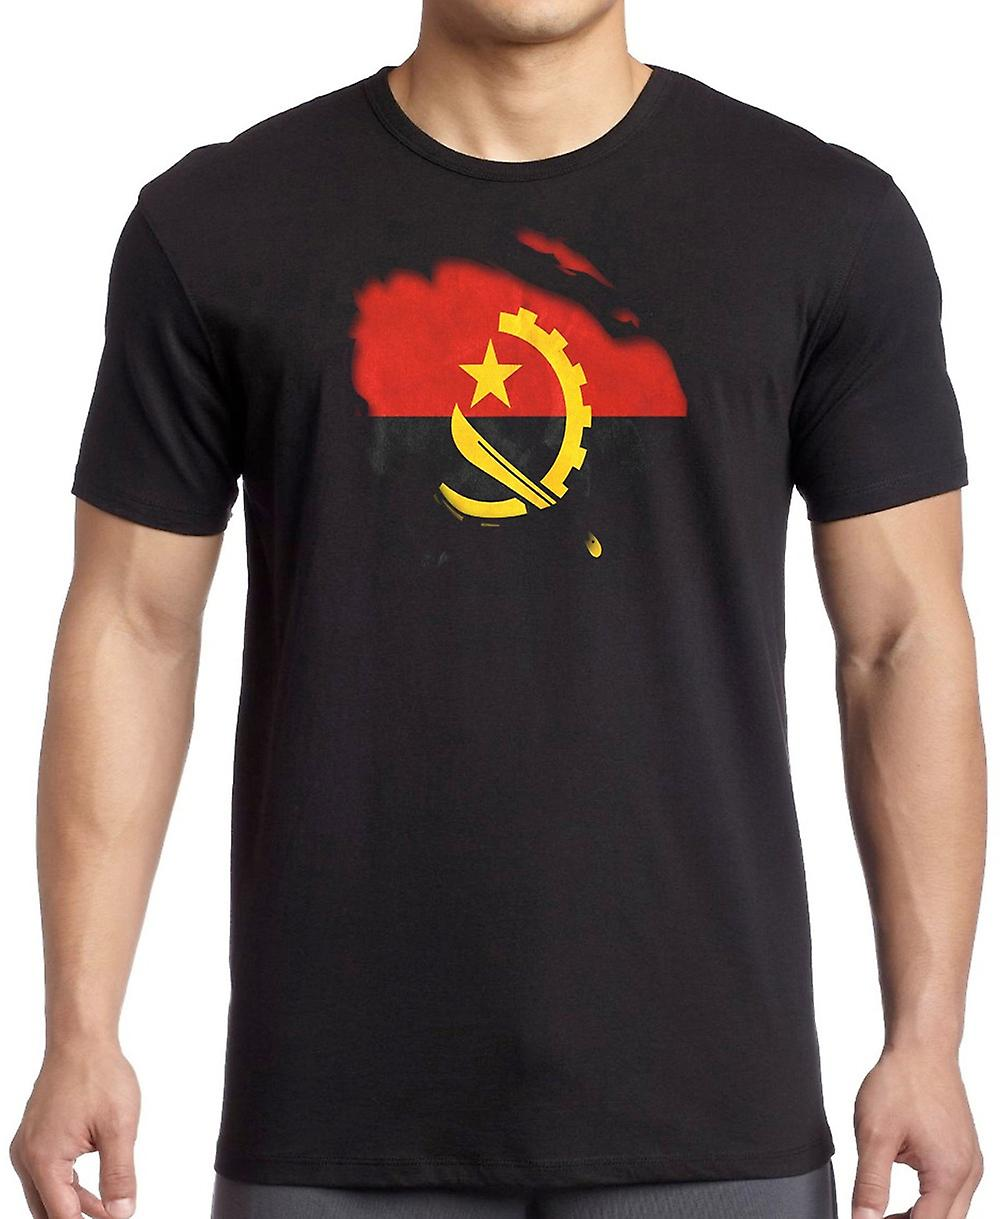 Angola Angolan Ripped Effect Under Shirt Kids T Shirt